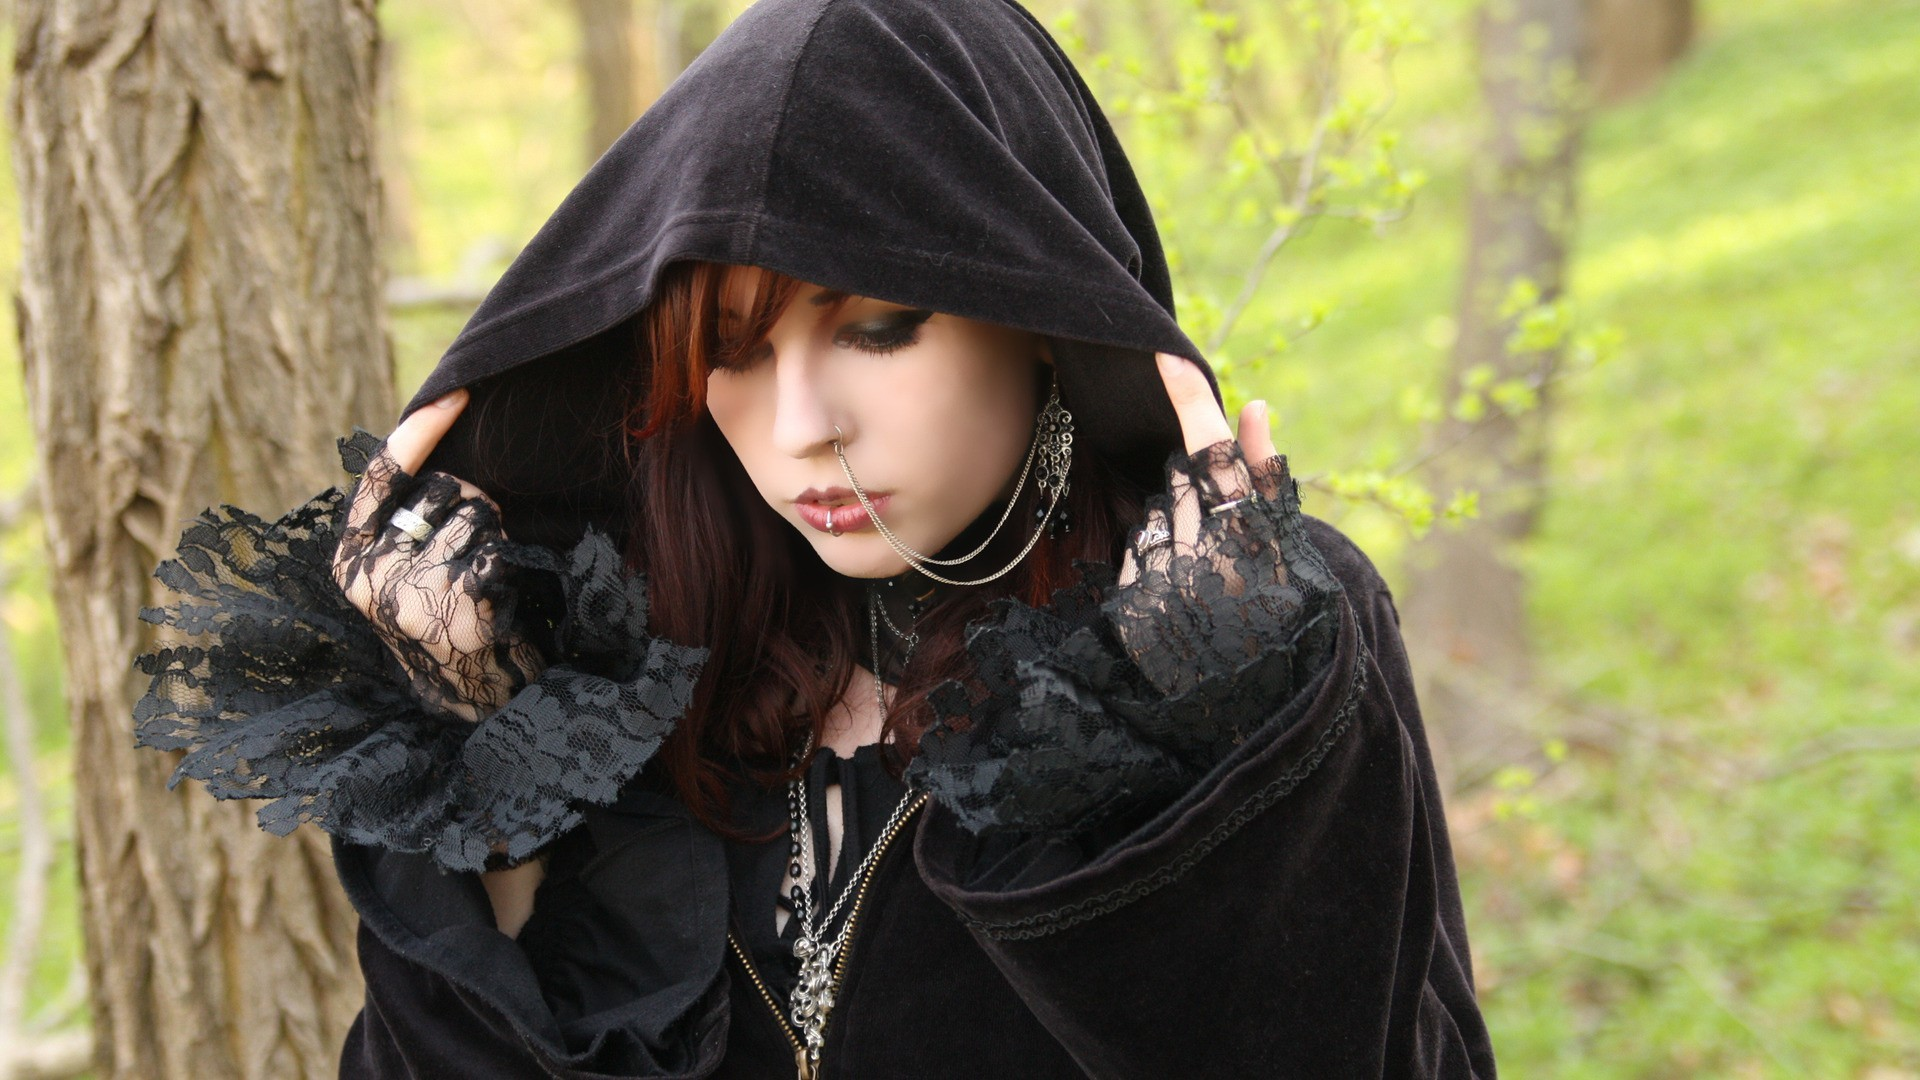 Gothic woman piercings forests hooded HD Wallpaper